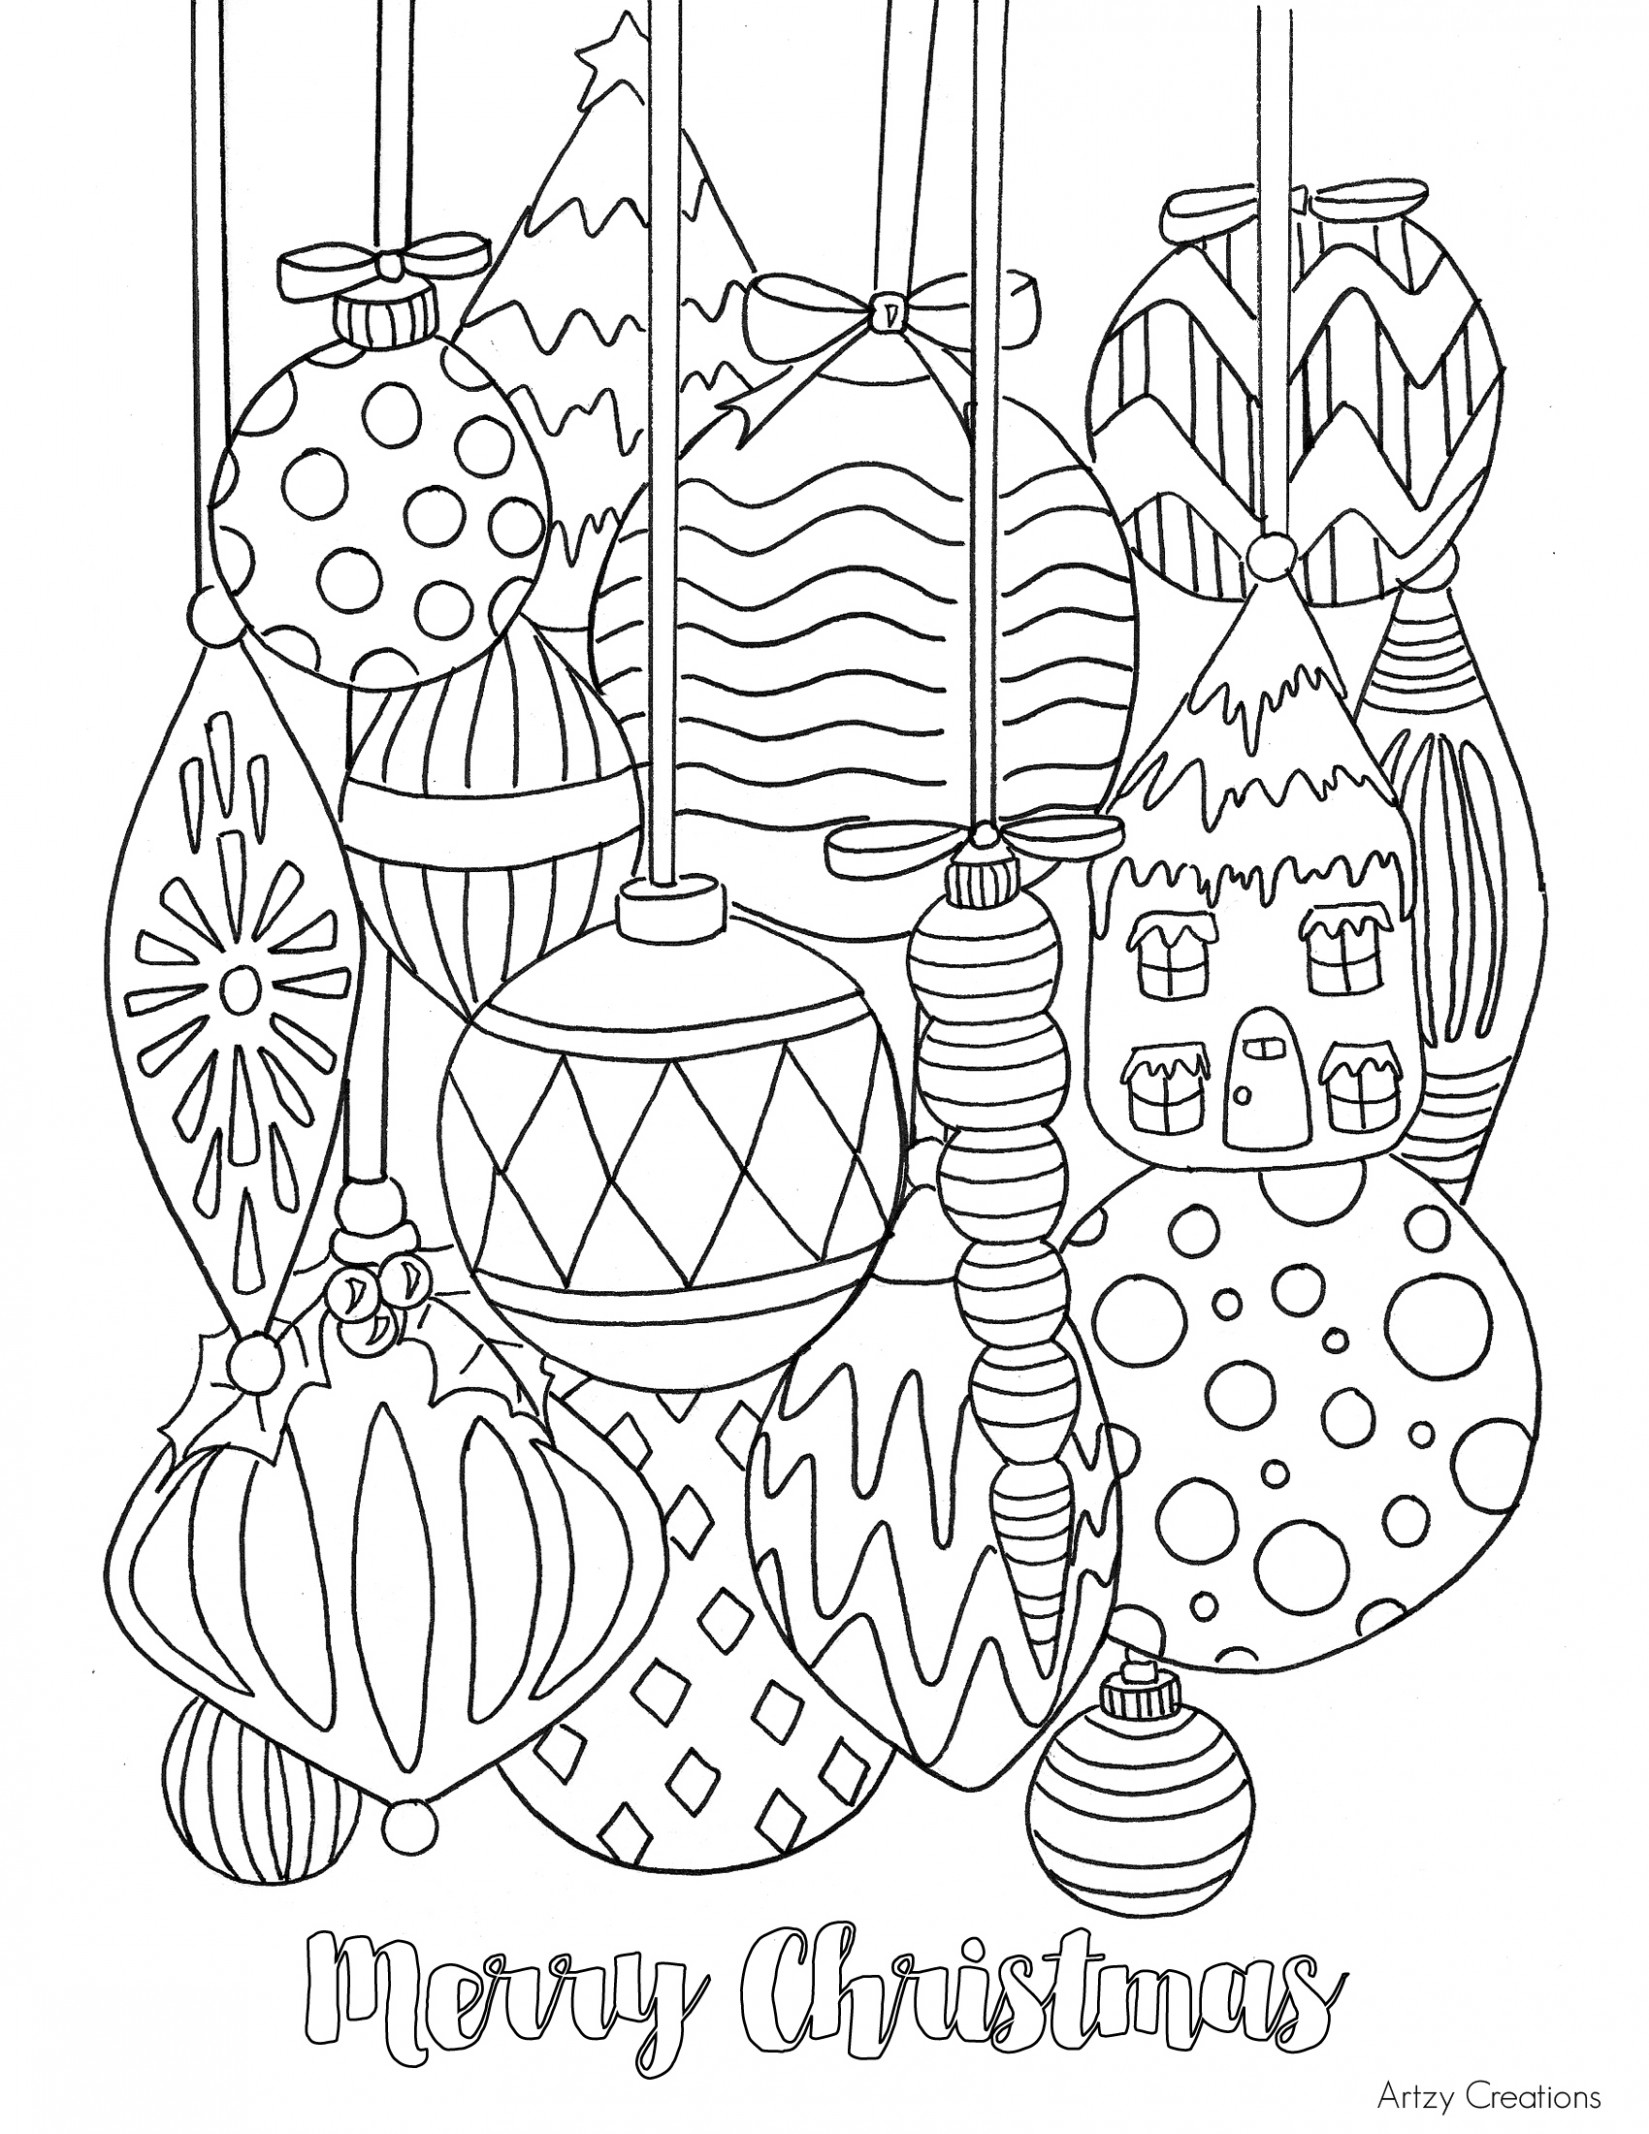 Free Christmas Ornament Coloring Page – TGIF – This Grandma is Fun – Printable Coloring Pages Christmas Decorations